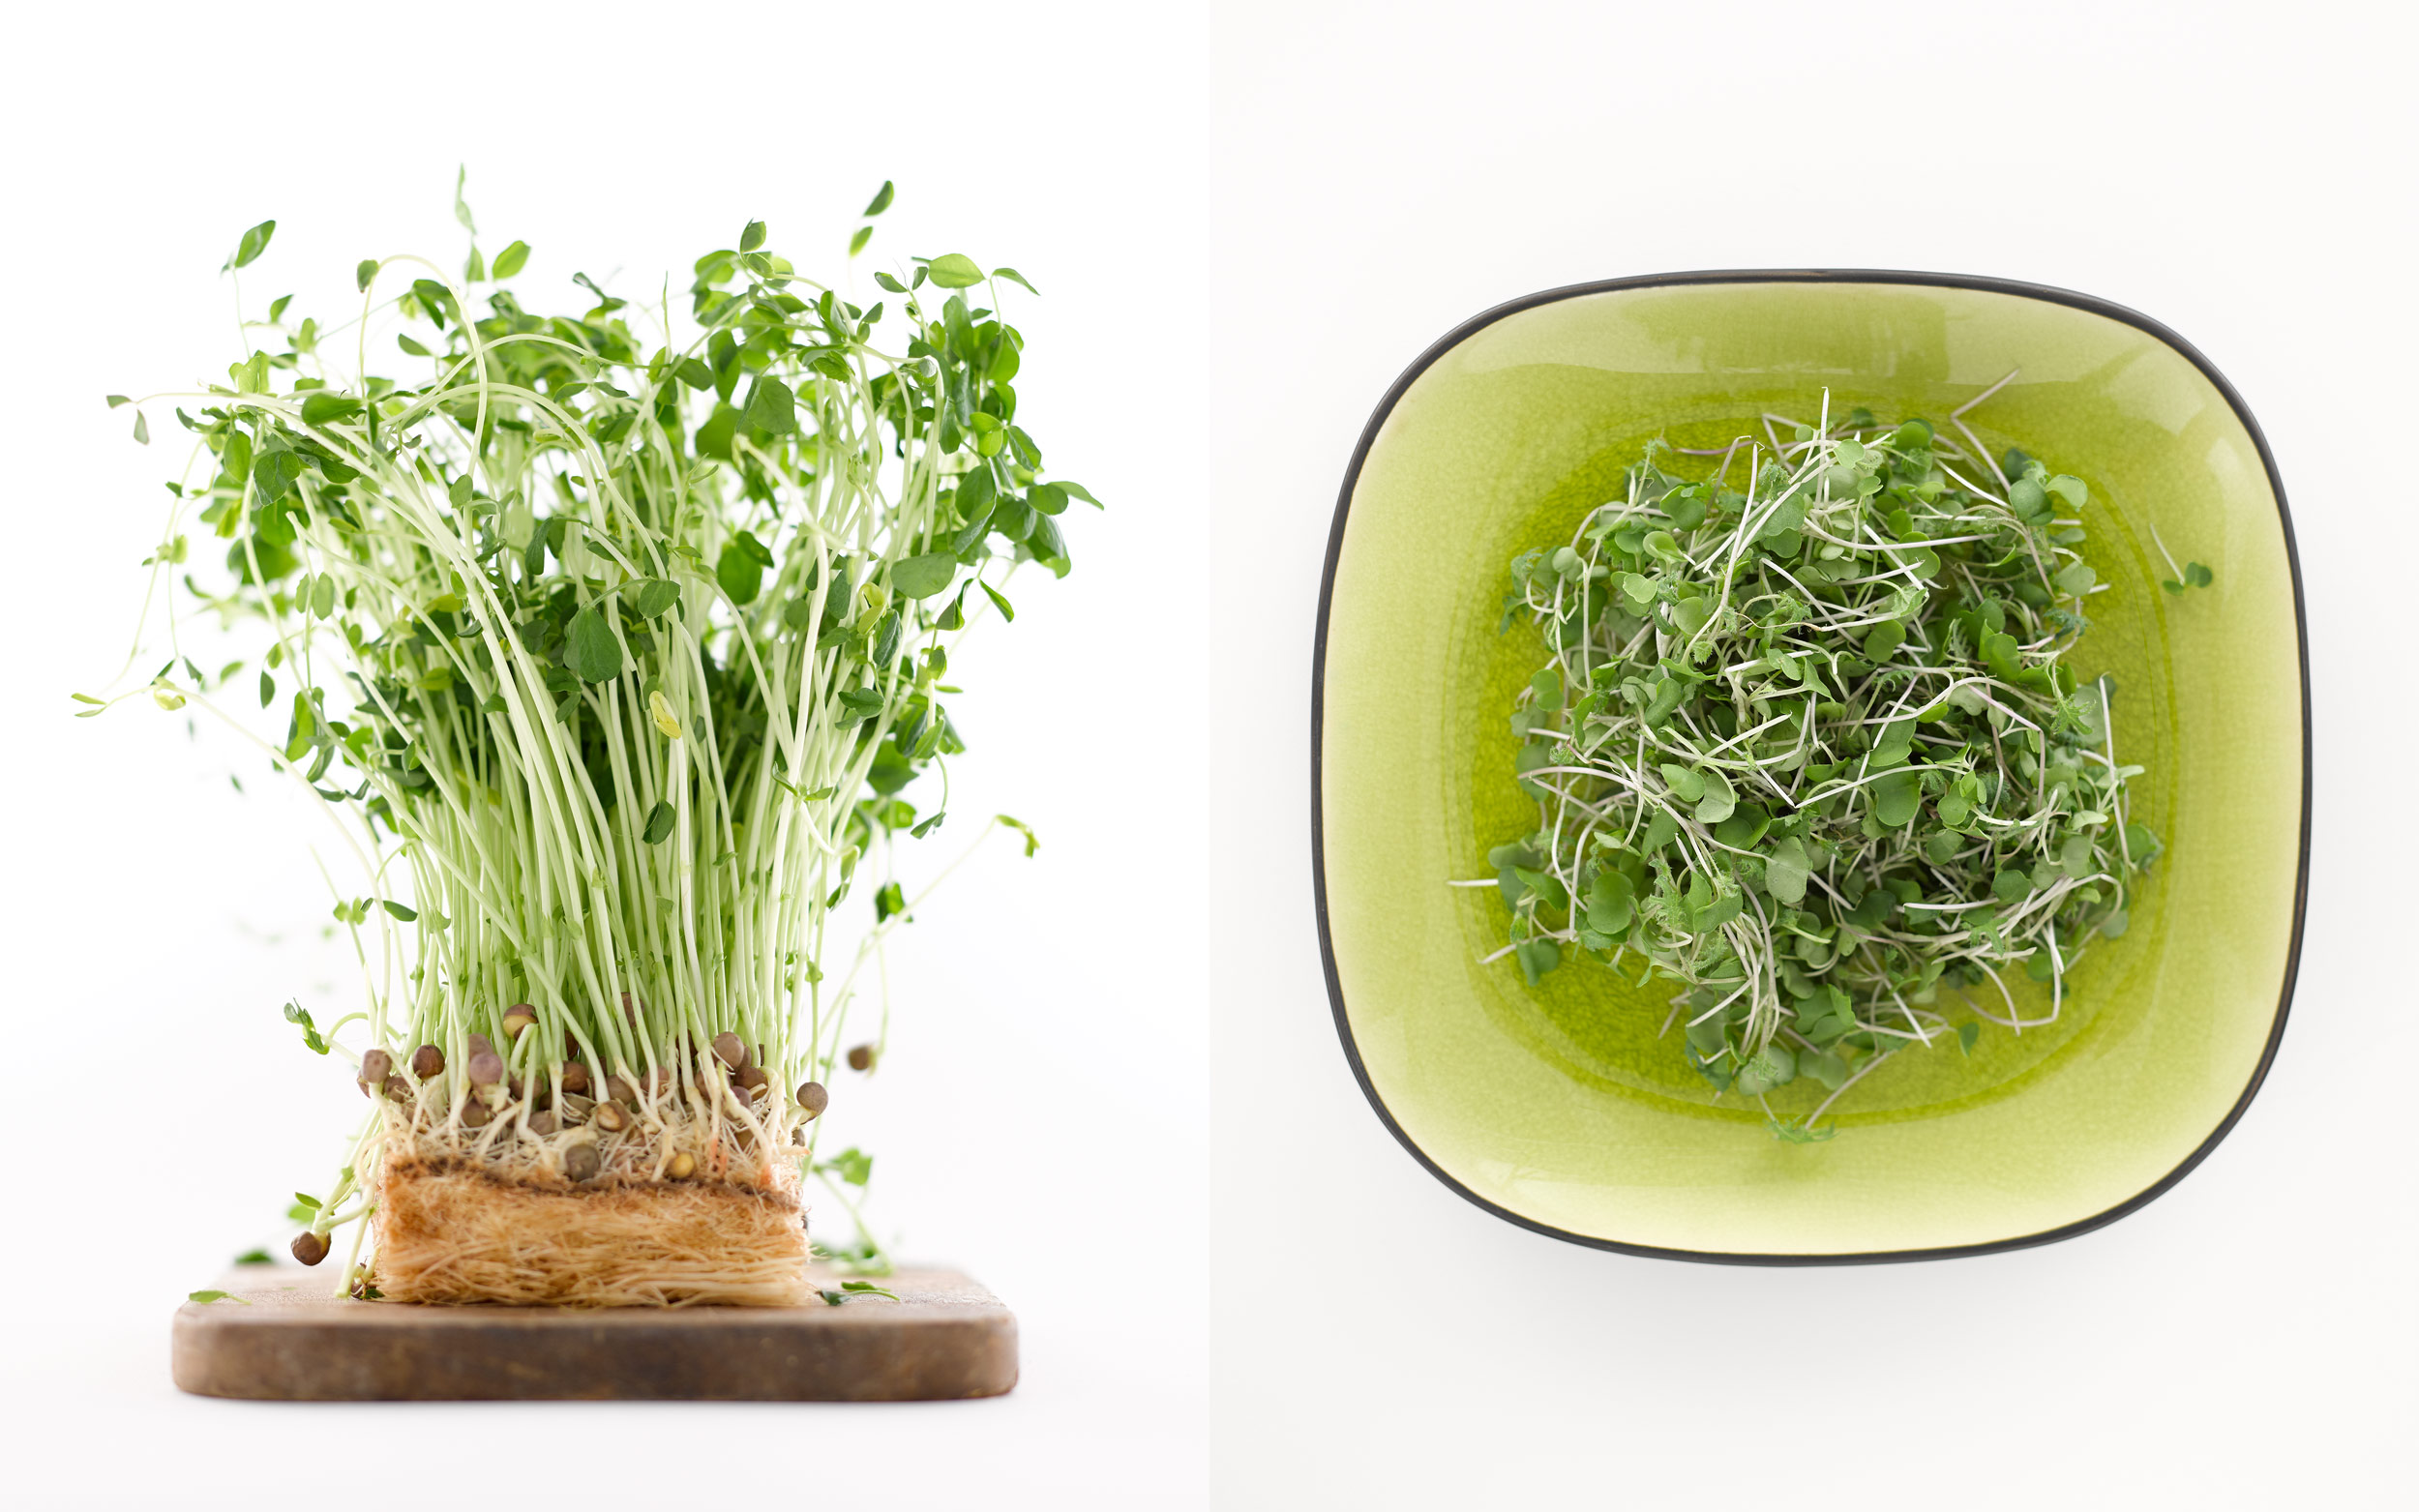 bublys-photography-sprouts-dish-and-plant-web-